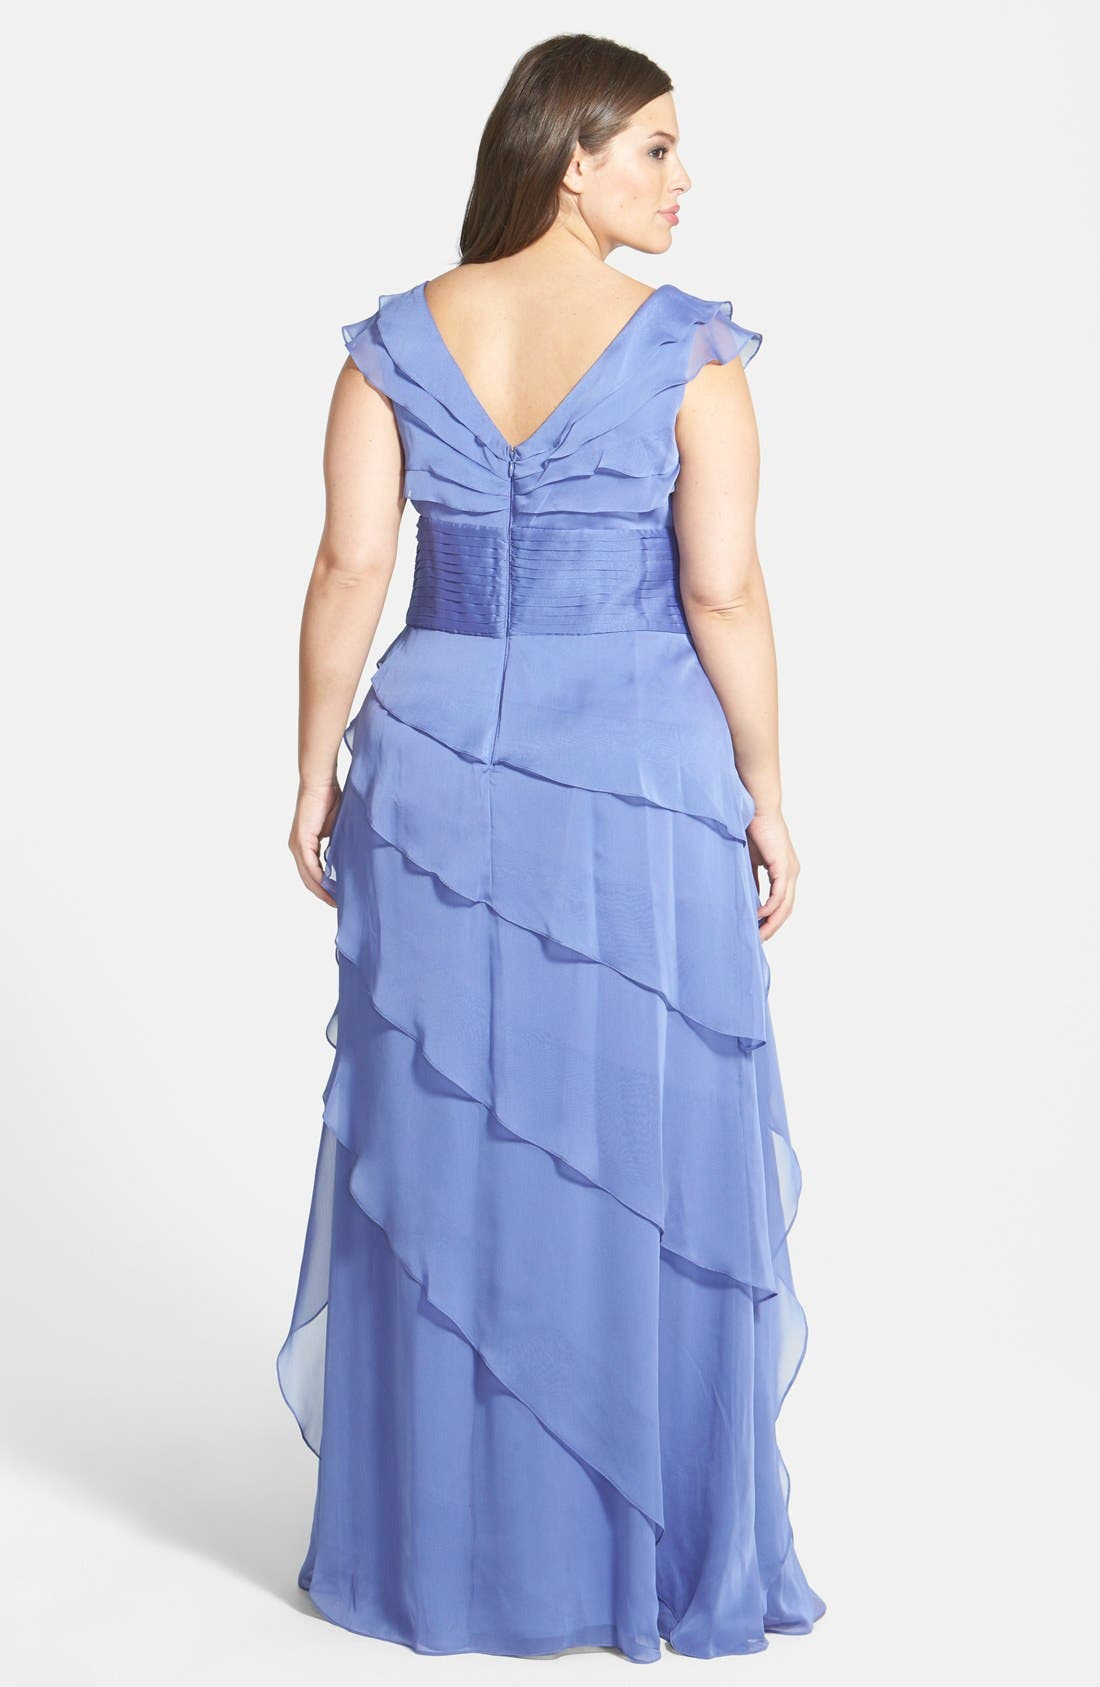 Alternate Image 2  - Adrianna Papell Iridescent Chiffon Petal Gown (Plus Size)